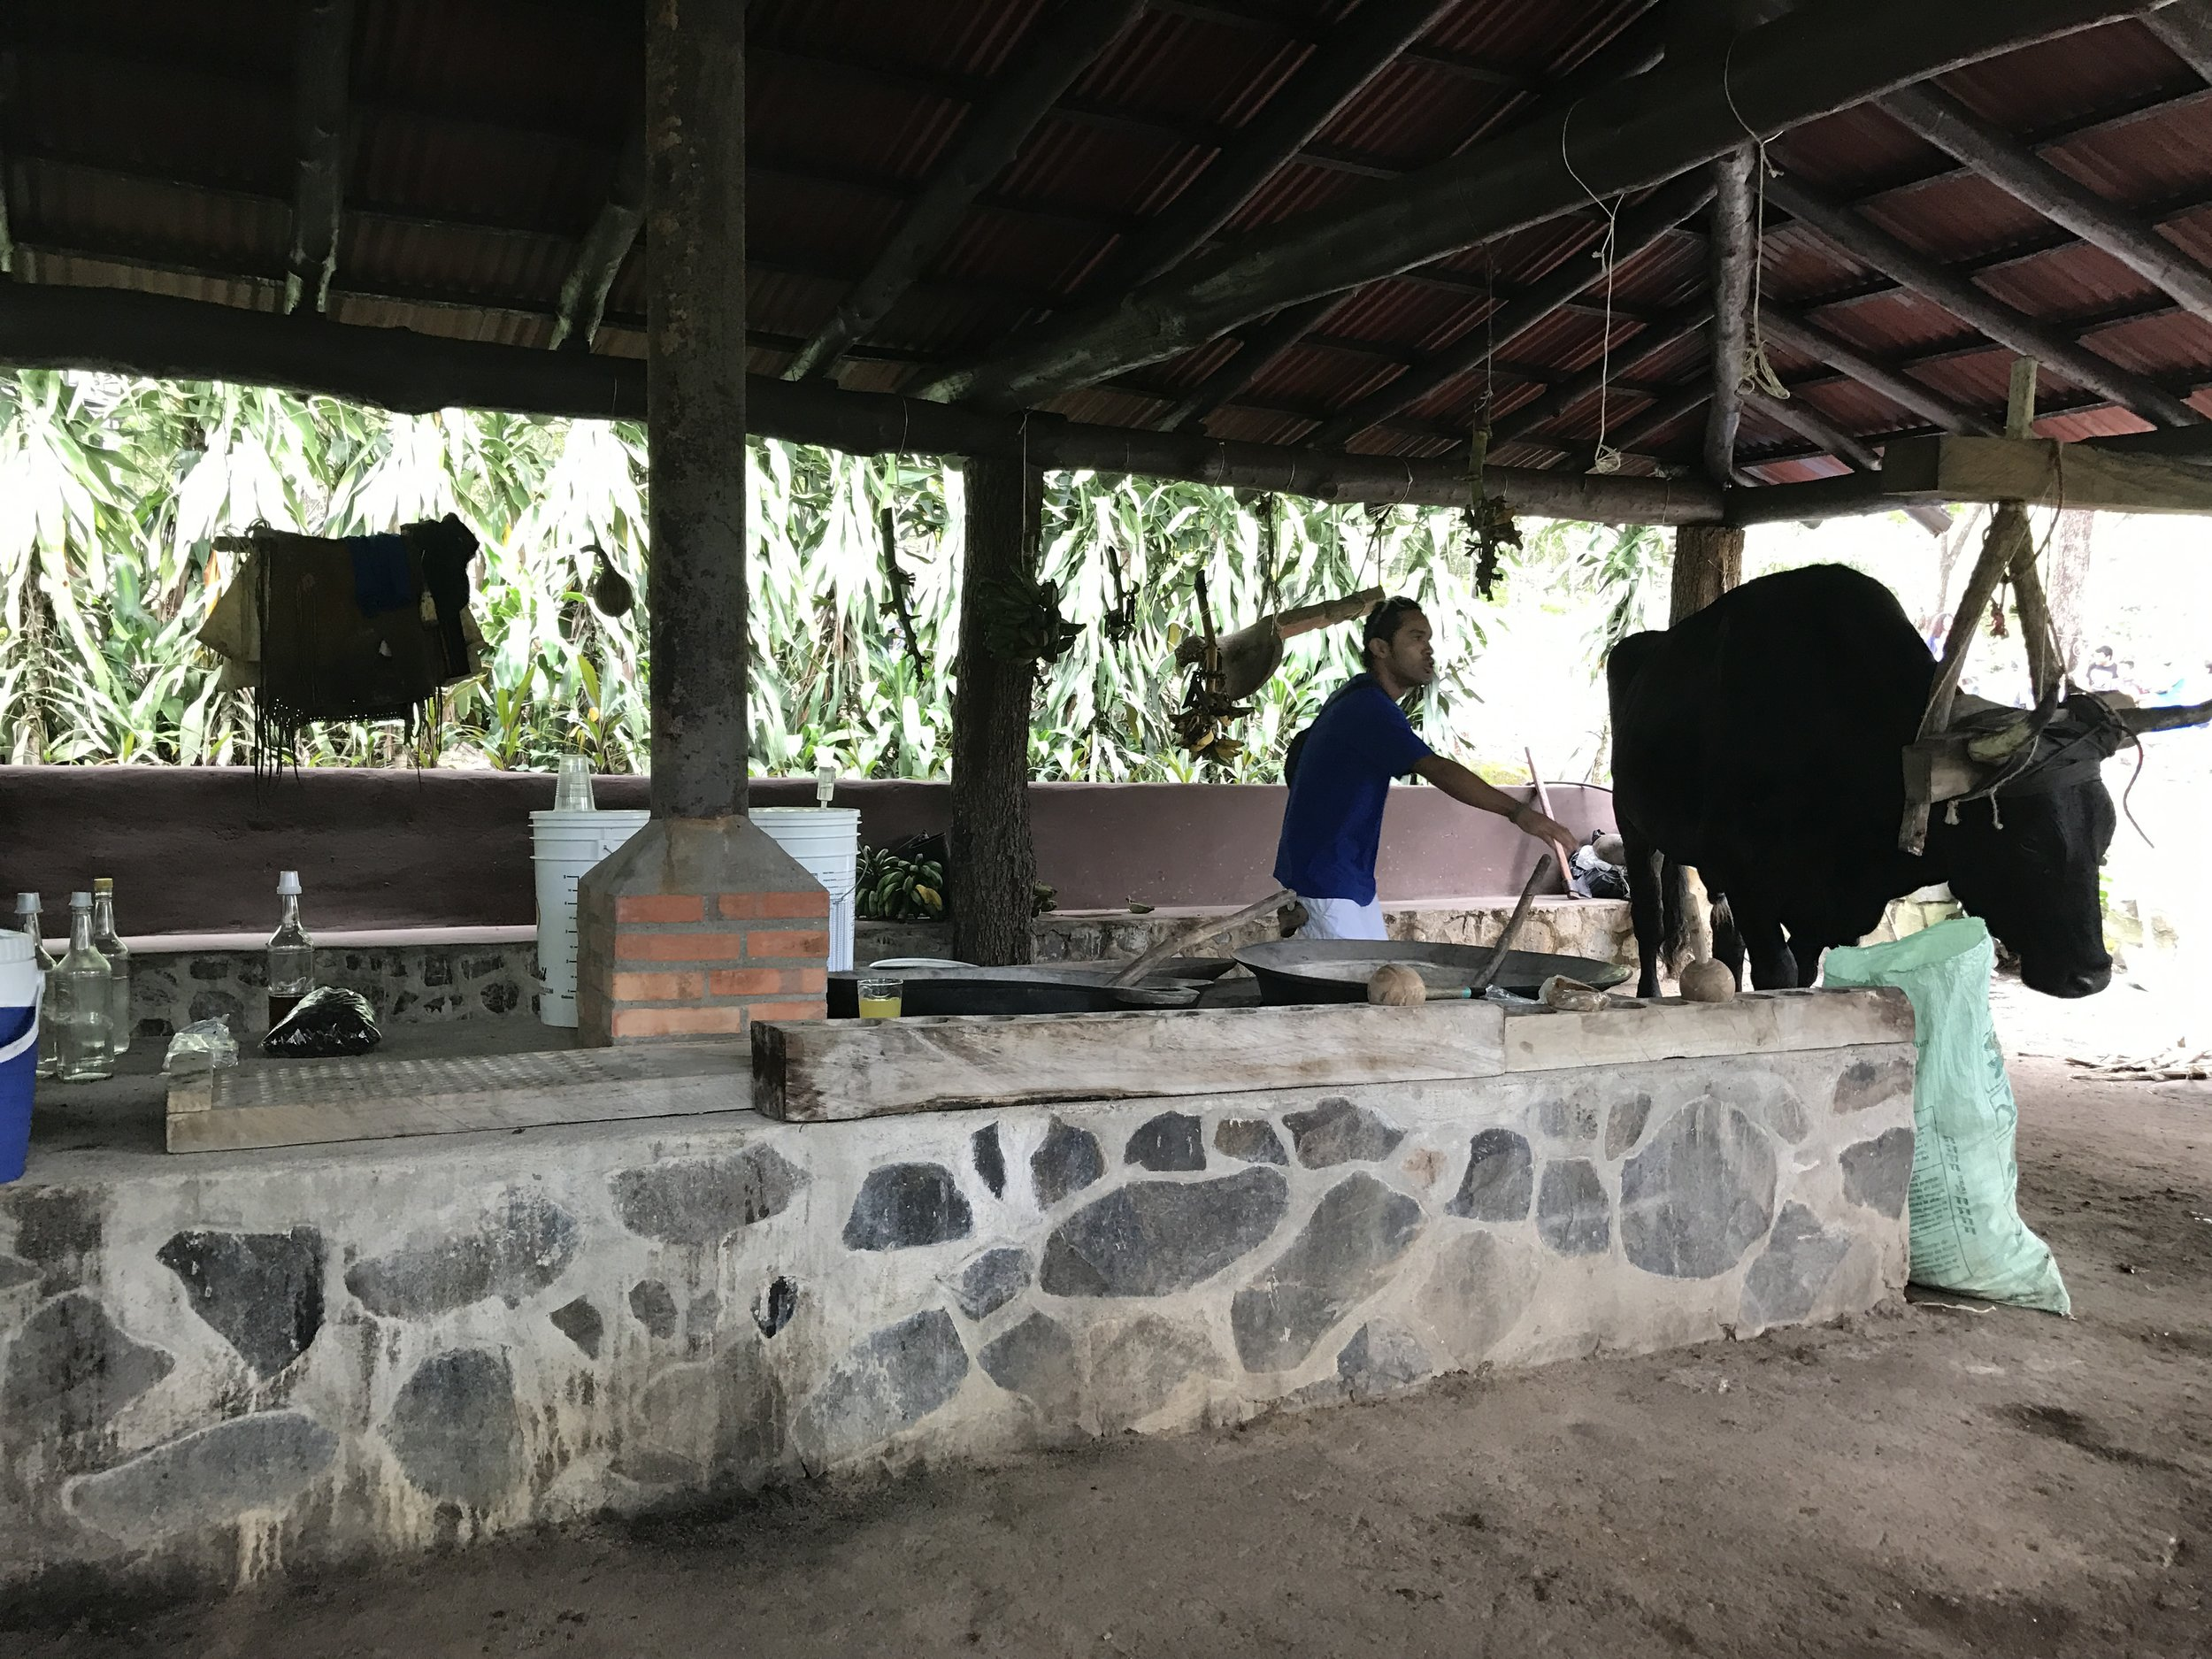 A sugar cane lesson in an authentic Costa Rican kitchen.